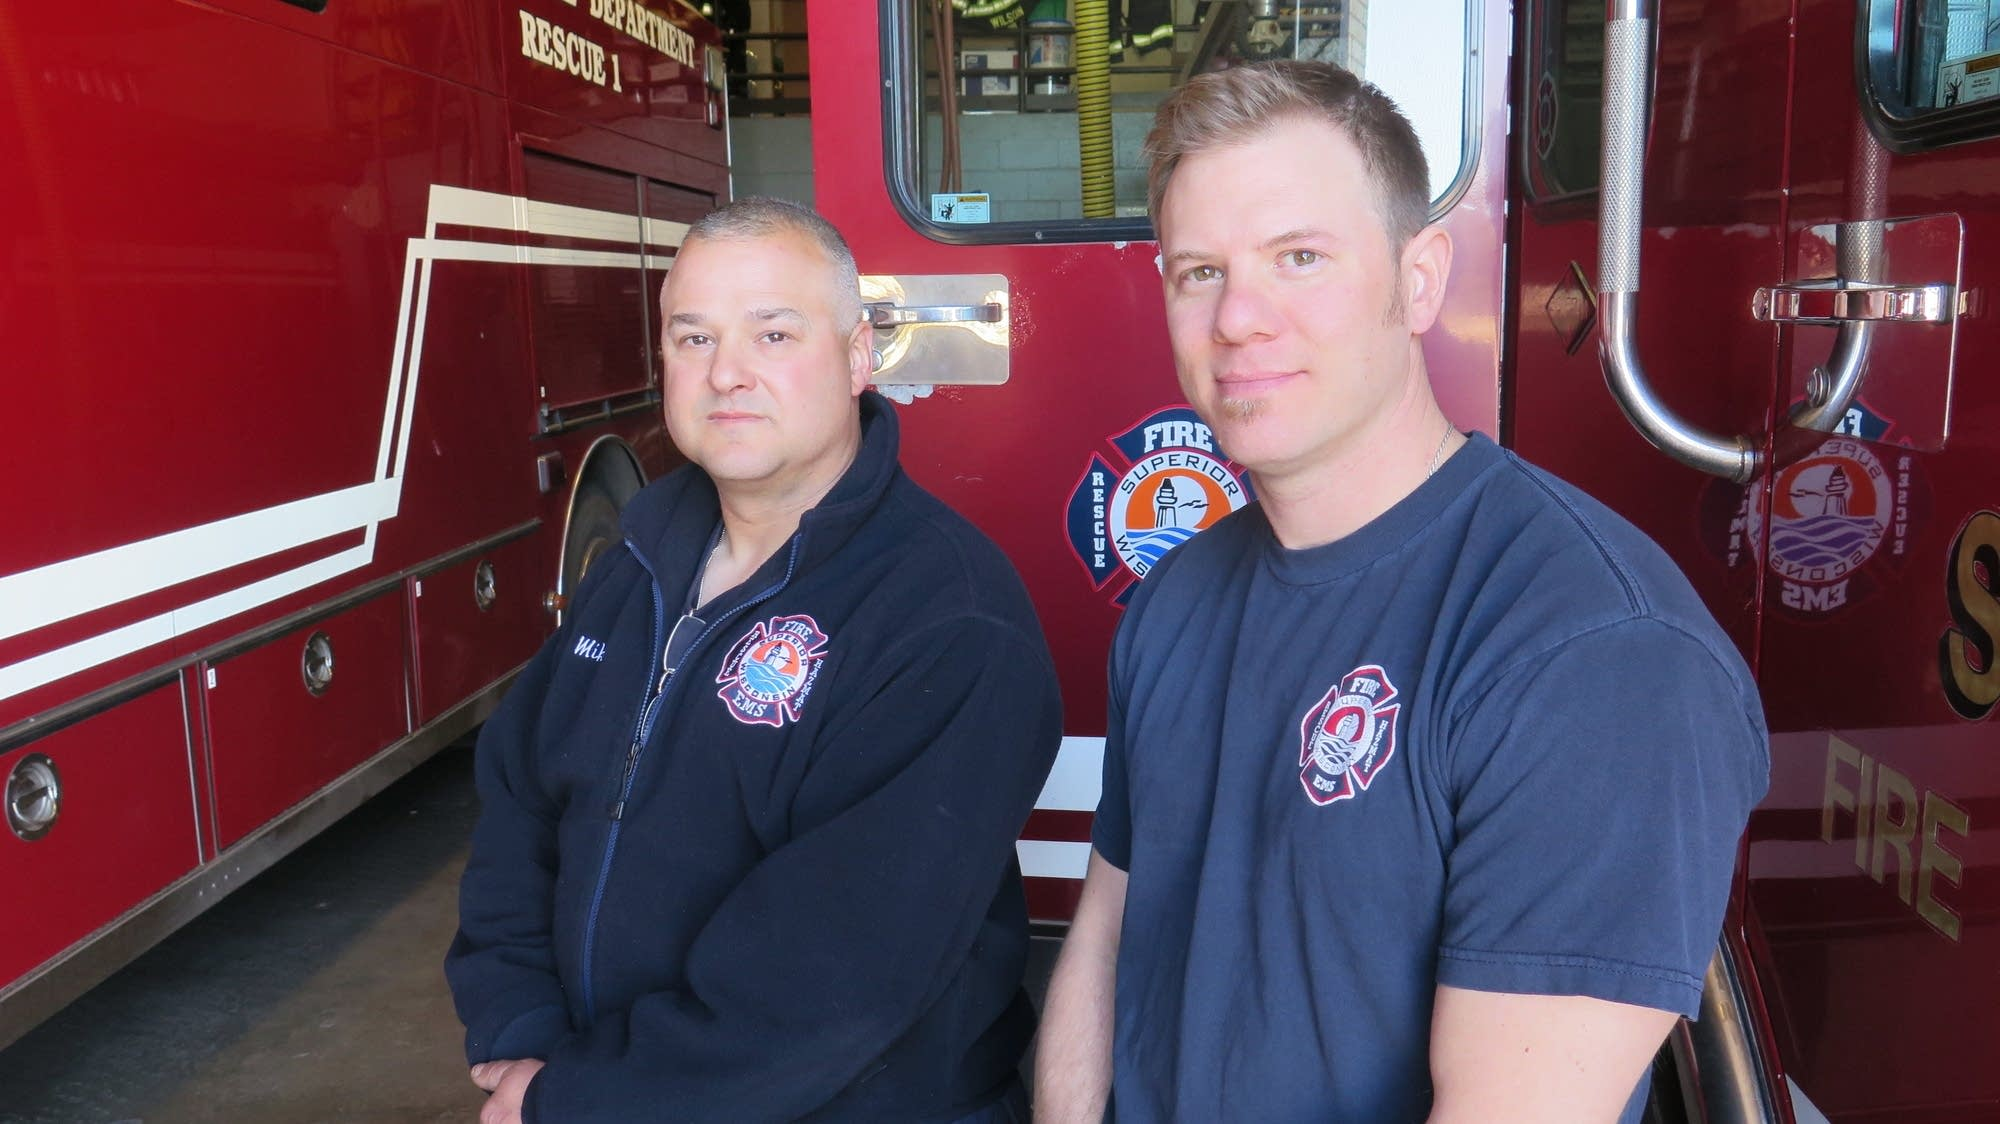 Mike Hoyt (left) and Dan Sertich of the Superior, Wis., Fire Department